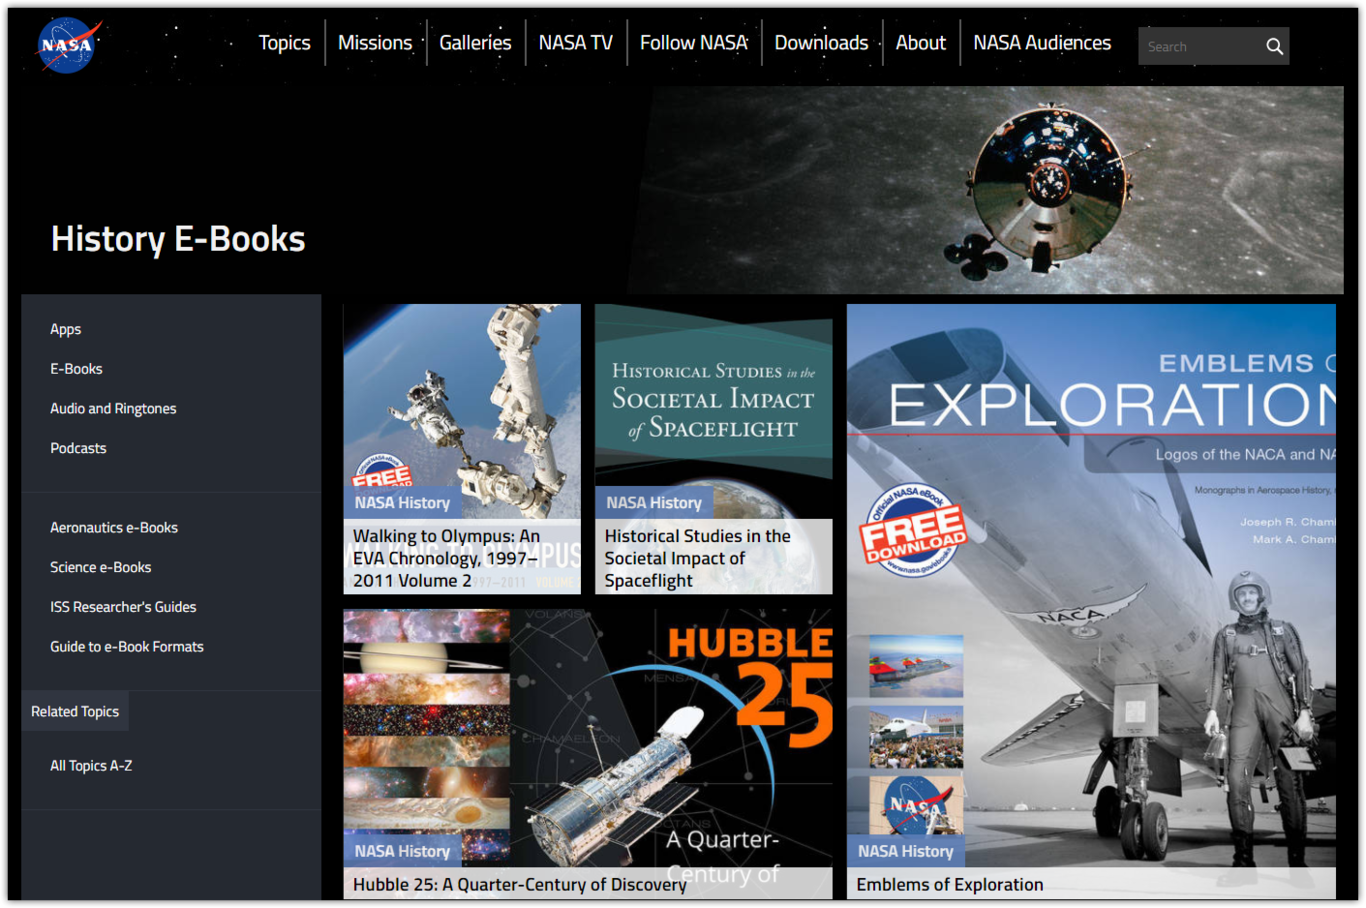 Descarga Libros Gratuitos Descargá Los Ebooks Gratuitos De La Nasa Sobre Historia